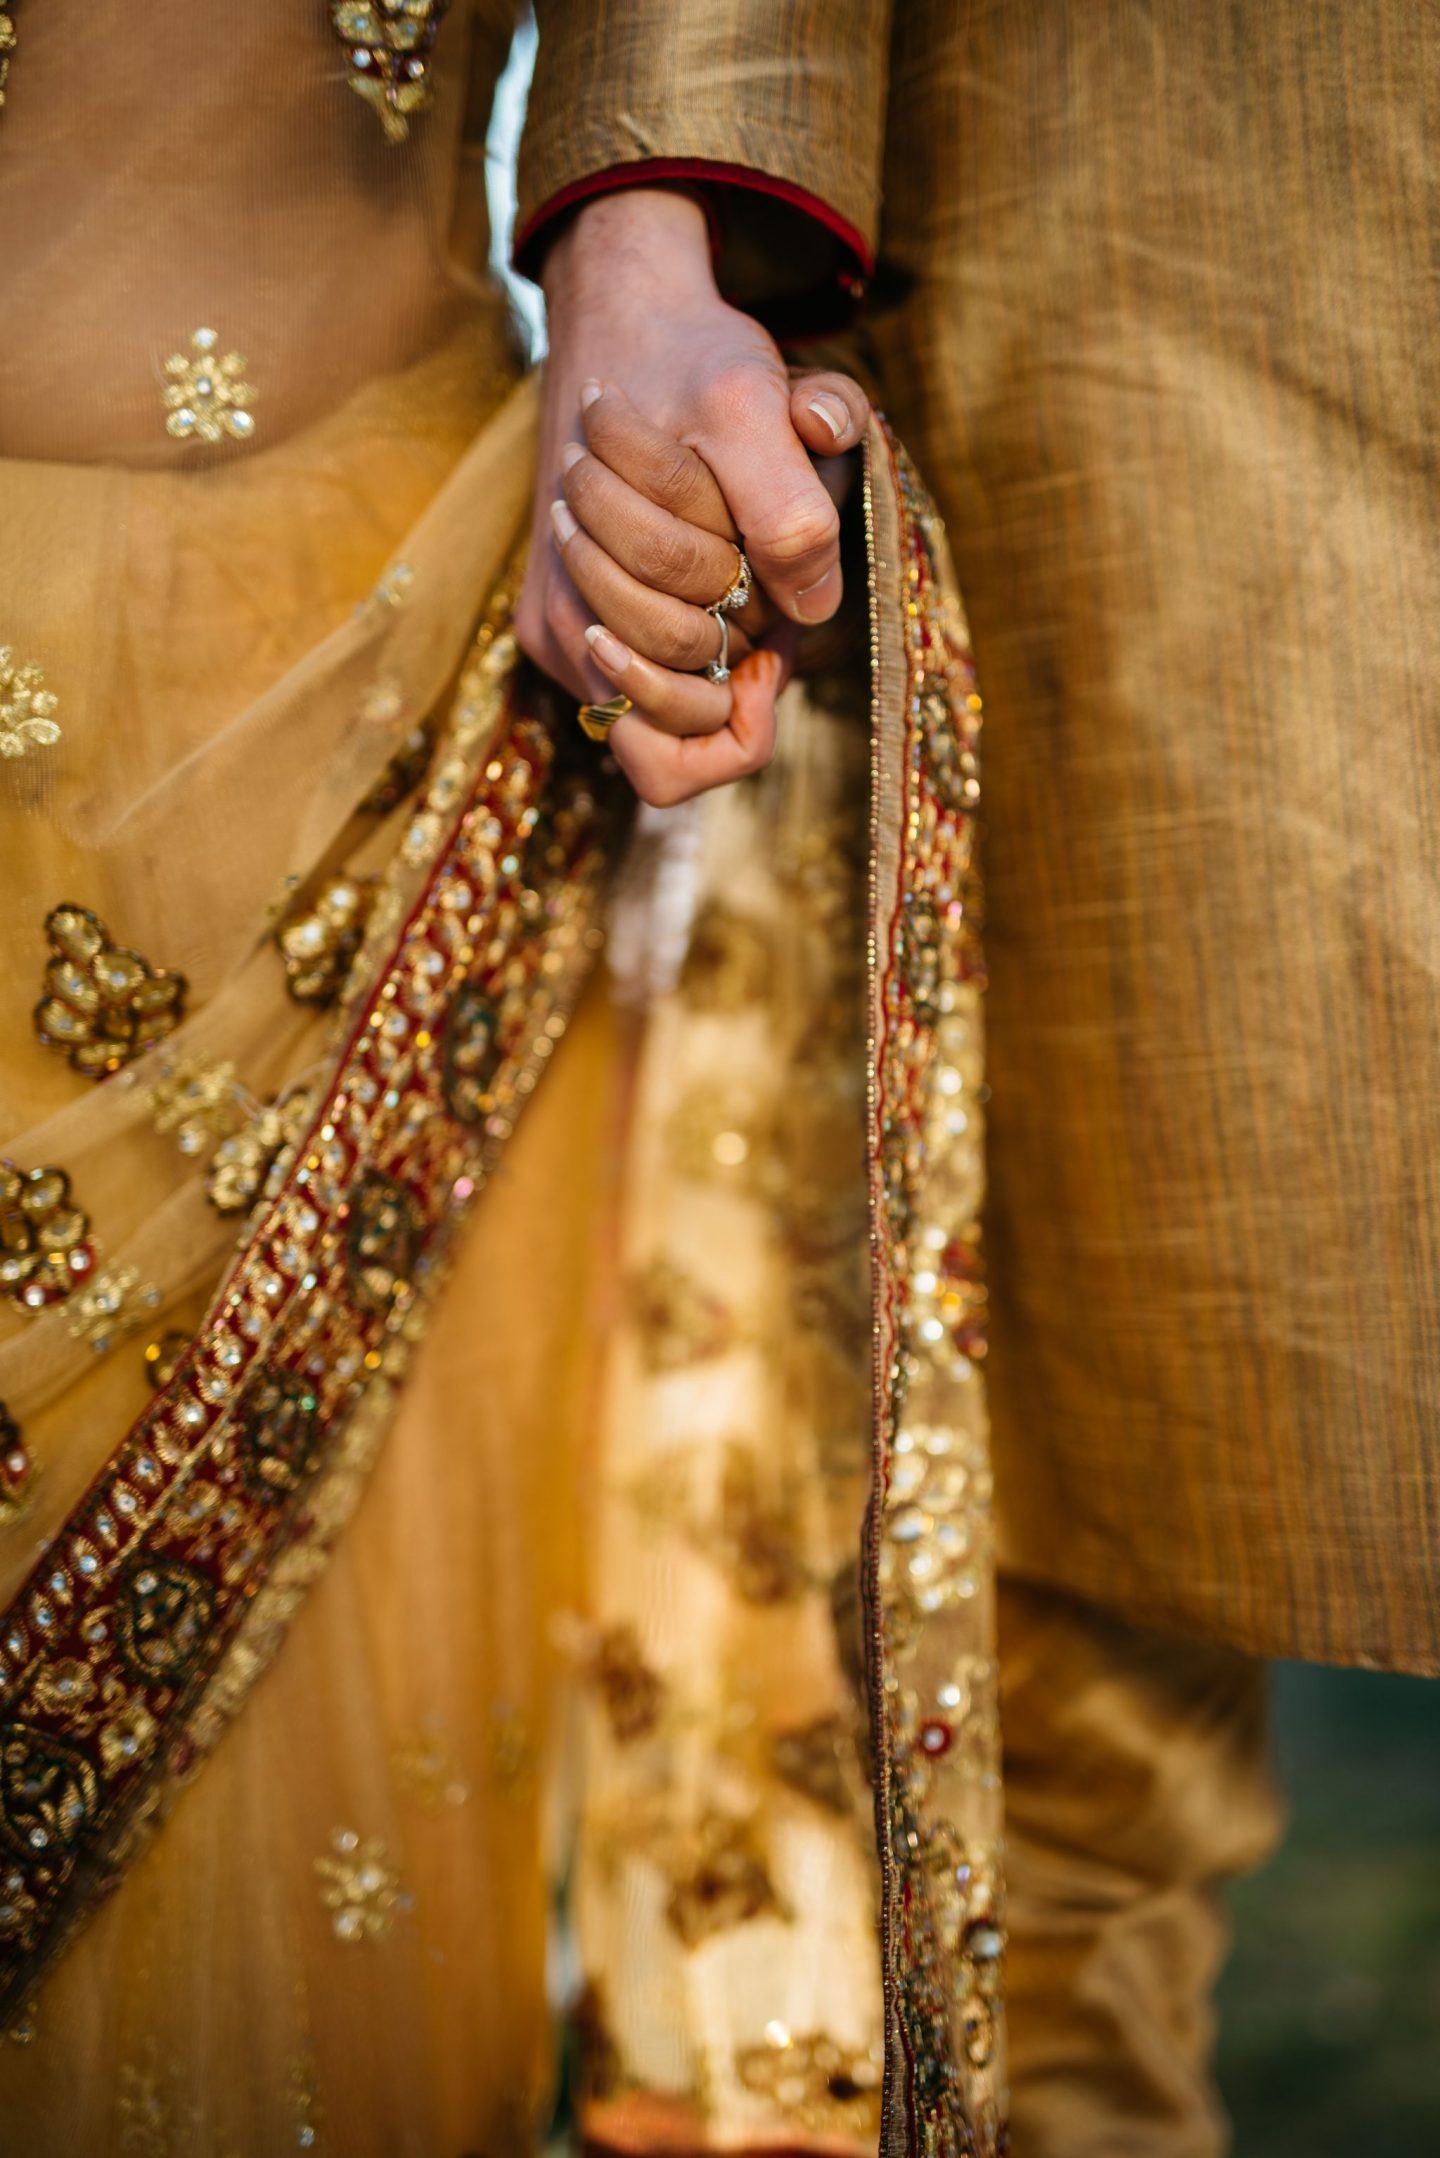 A QUICK JAUNT ON INTERESTING WEDDING TRADITIONS AROUND THE WORLD